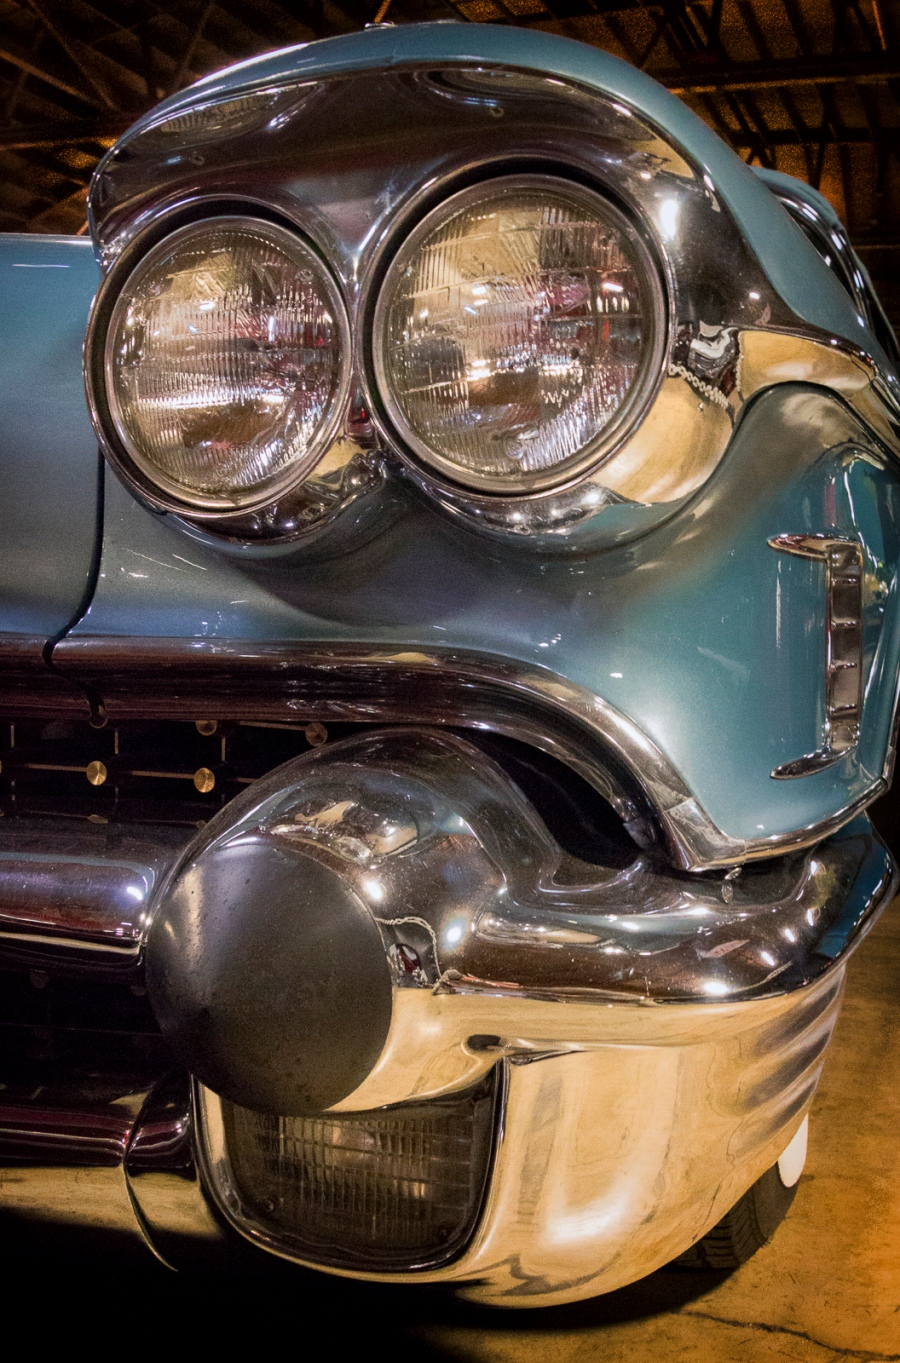 Seen at the California Automobile Museum http://www.calautomuseum.org Sacramento, California, U.S.A. March 31, 2016